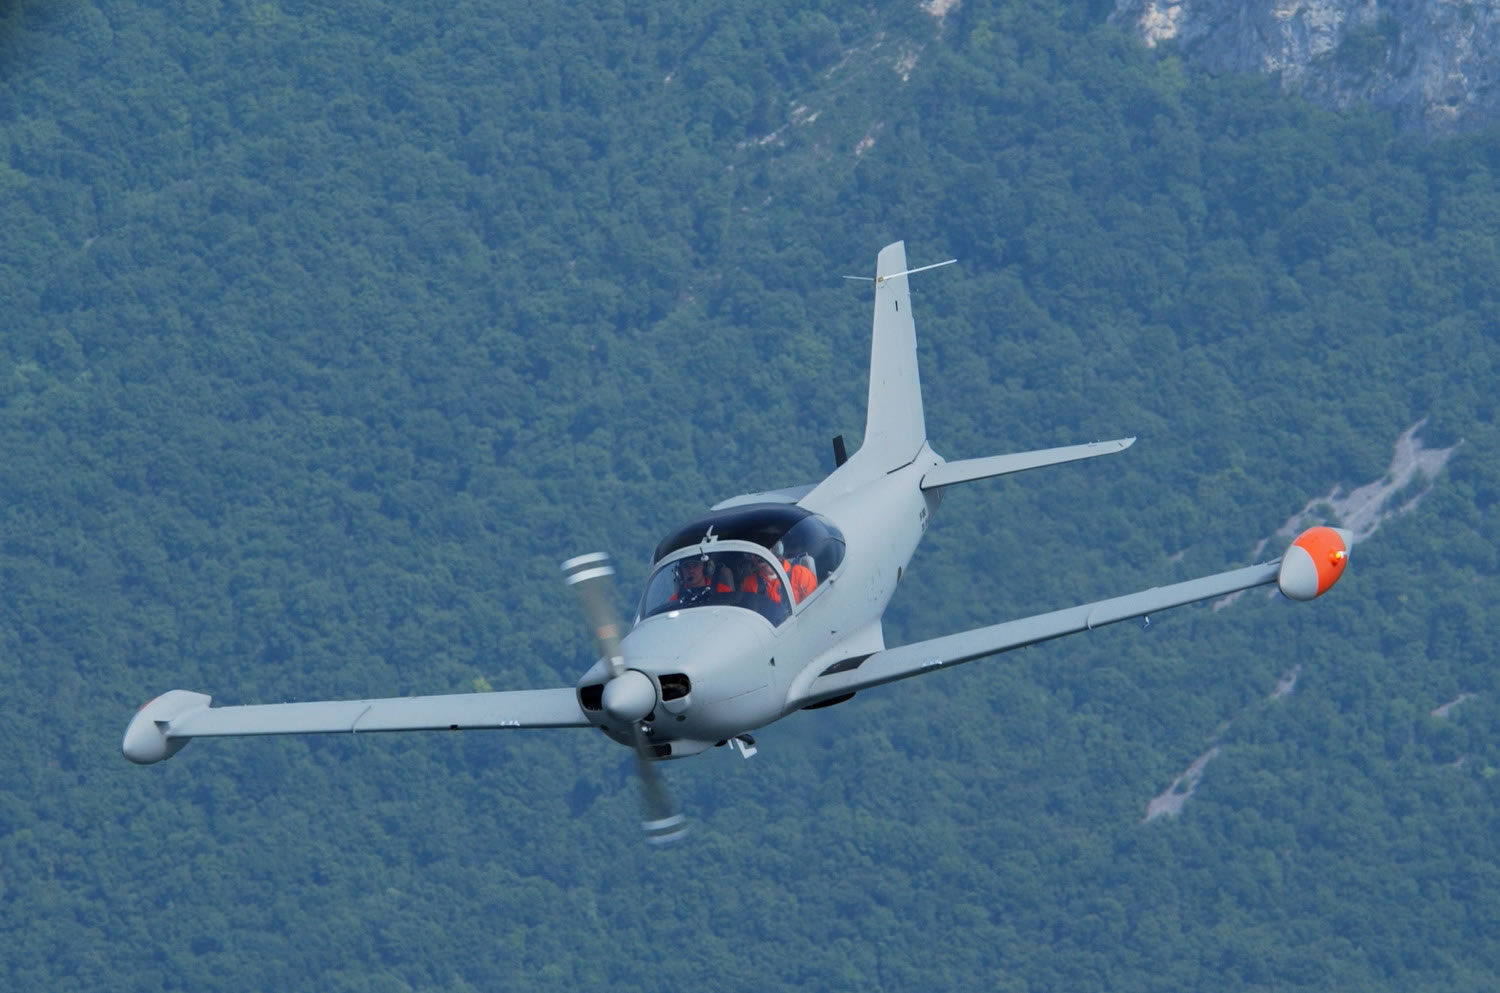 http://www.aircraftinformation.info/Images/SF-260_02.jpg